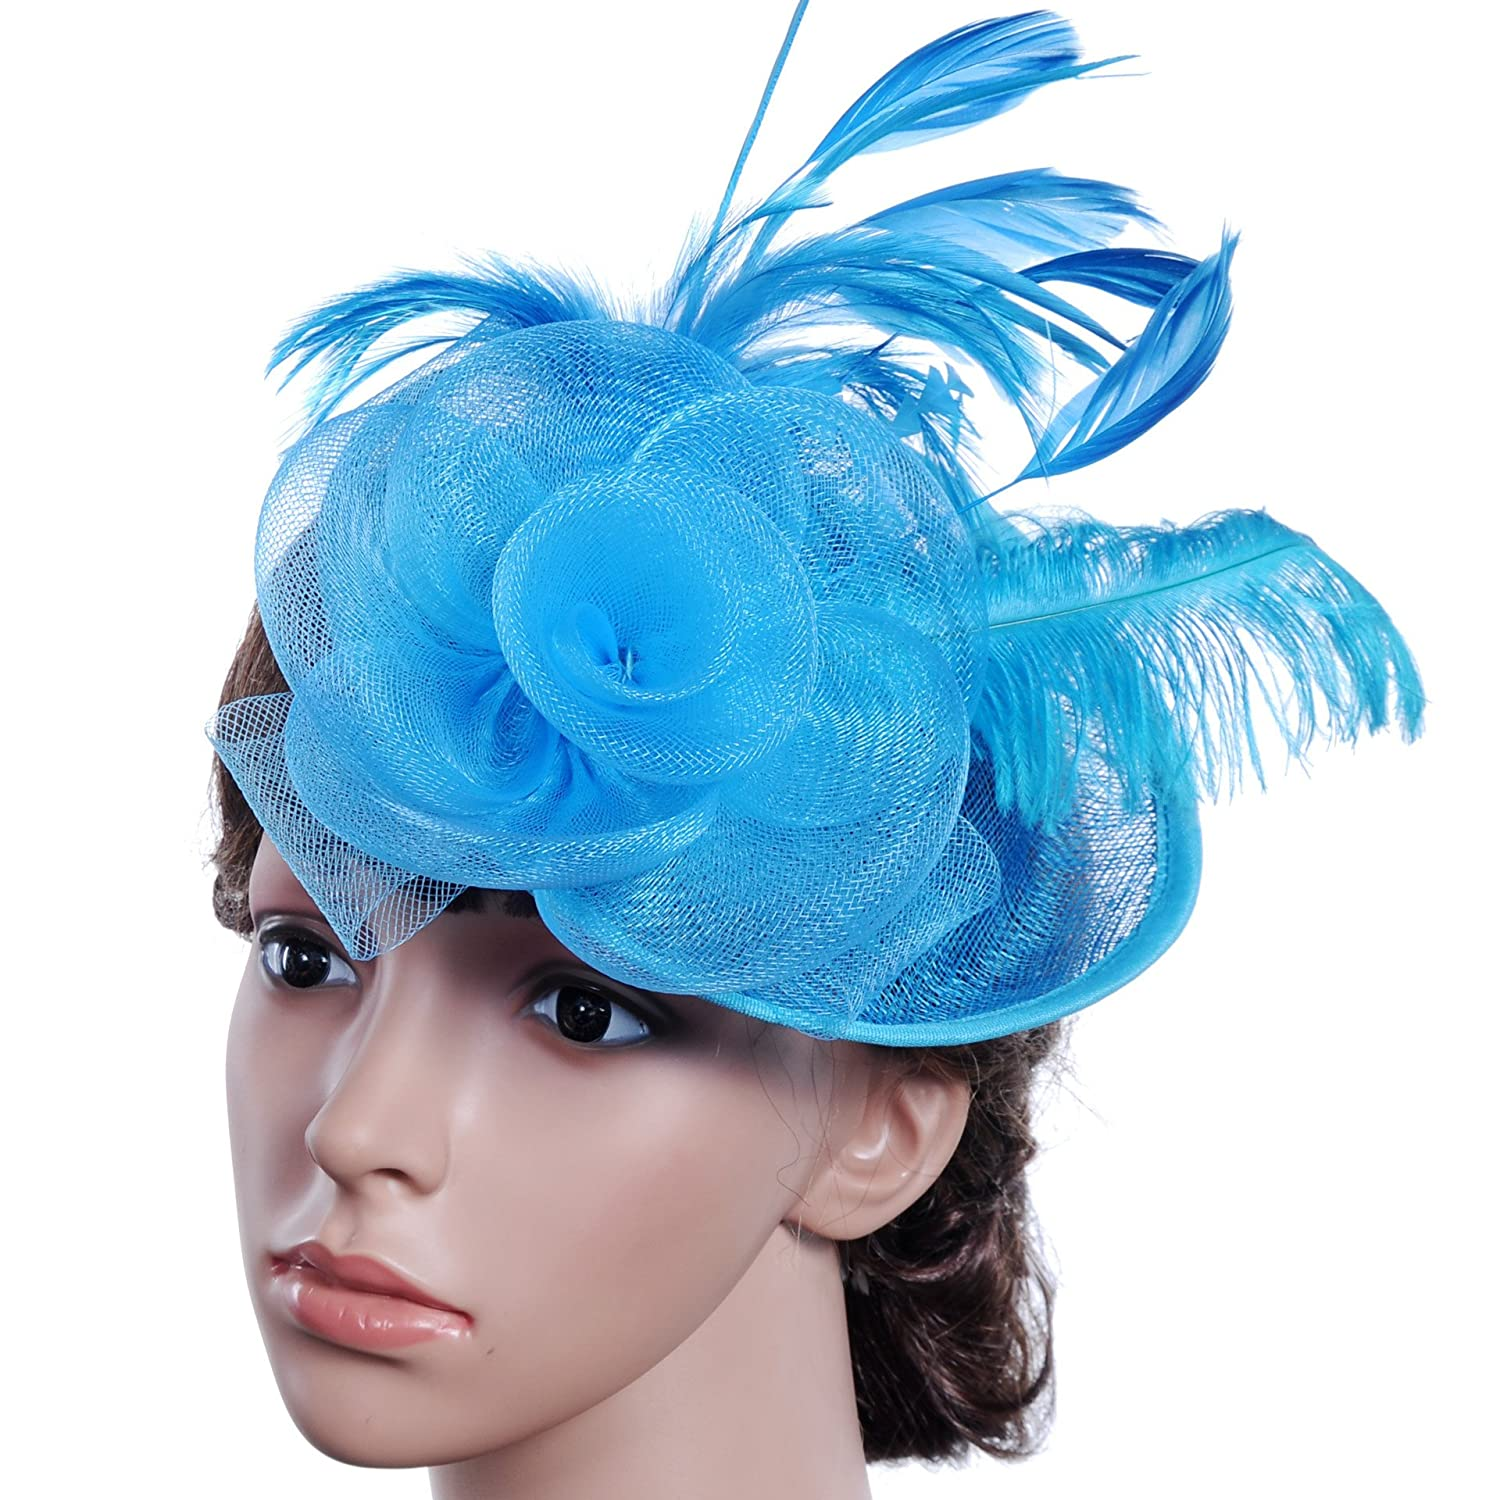 Swallowuk Frauen Mode Elegante Gaze Blume Cocktail Hut Hochzeit Party Hats